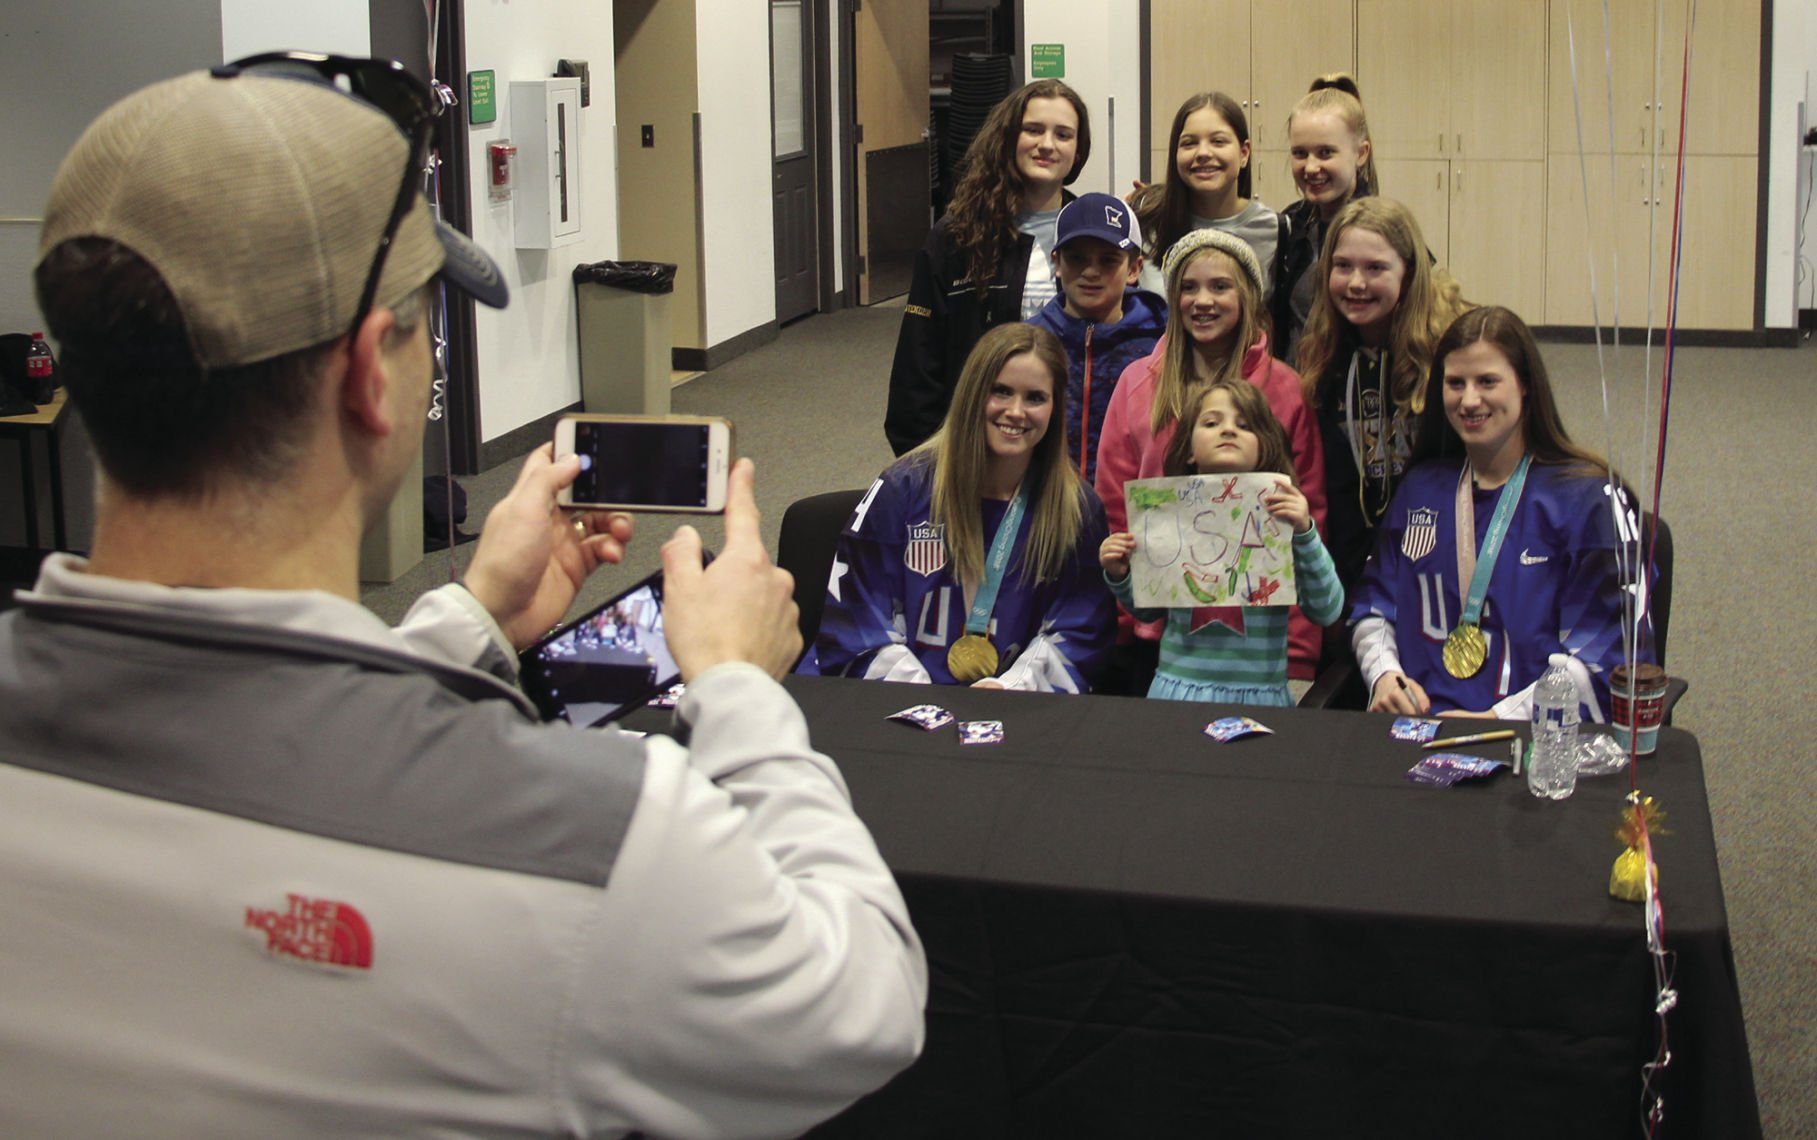 Pyeongchang: Hockey Fans Celebrate Olympic Gold Medalists During Welcome Home Reception